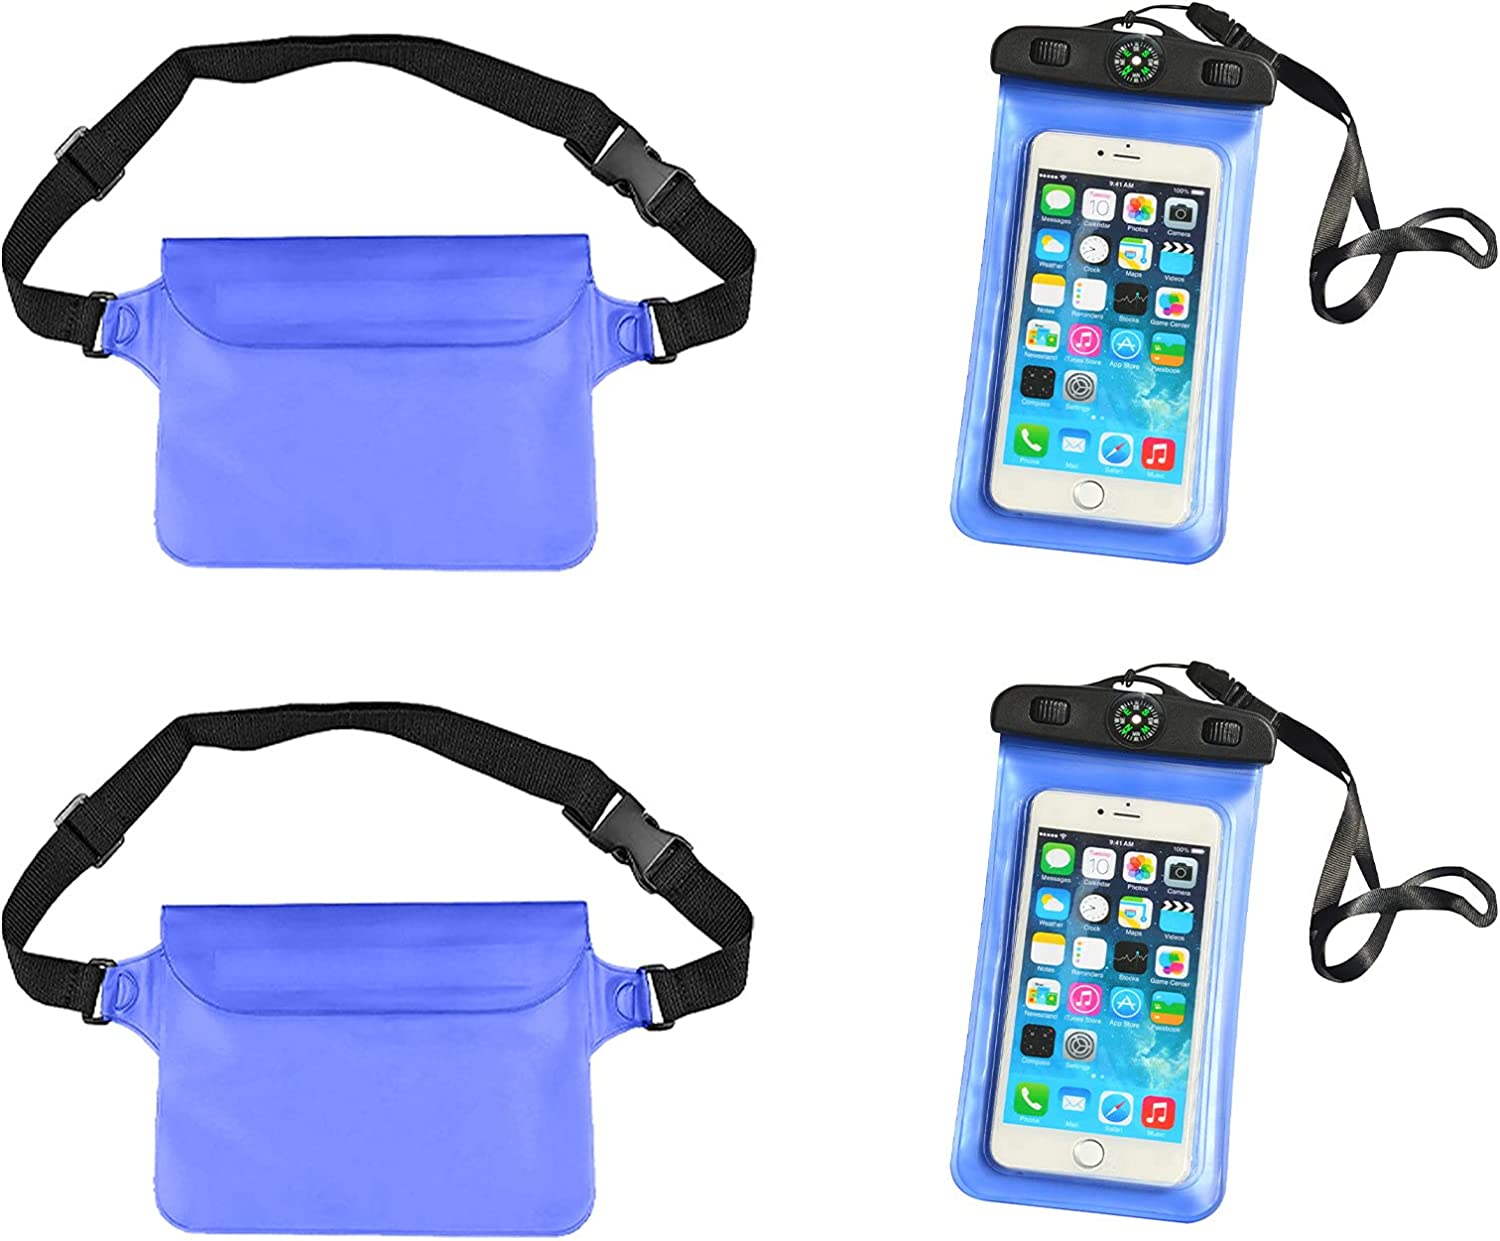 Waterproof Phone Pouch, Universal Waterproof Pouch Cellphone Dry Bag Case, Underwater Cell Phone Dry Bag, Universal Cell Phone Waterproof Case for Beach Kayaking Travel, 2 Pack (Blue)